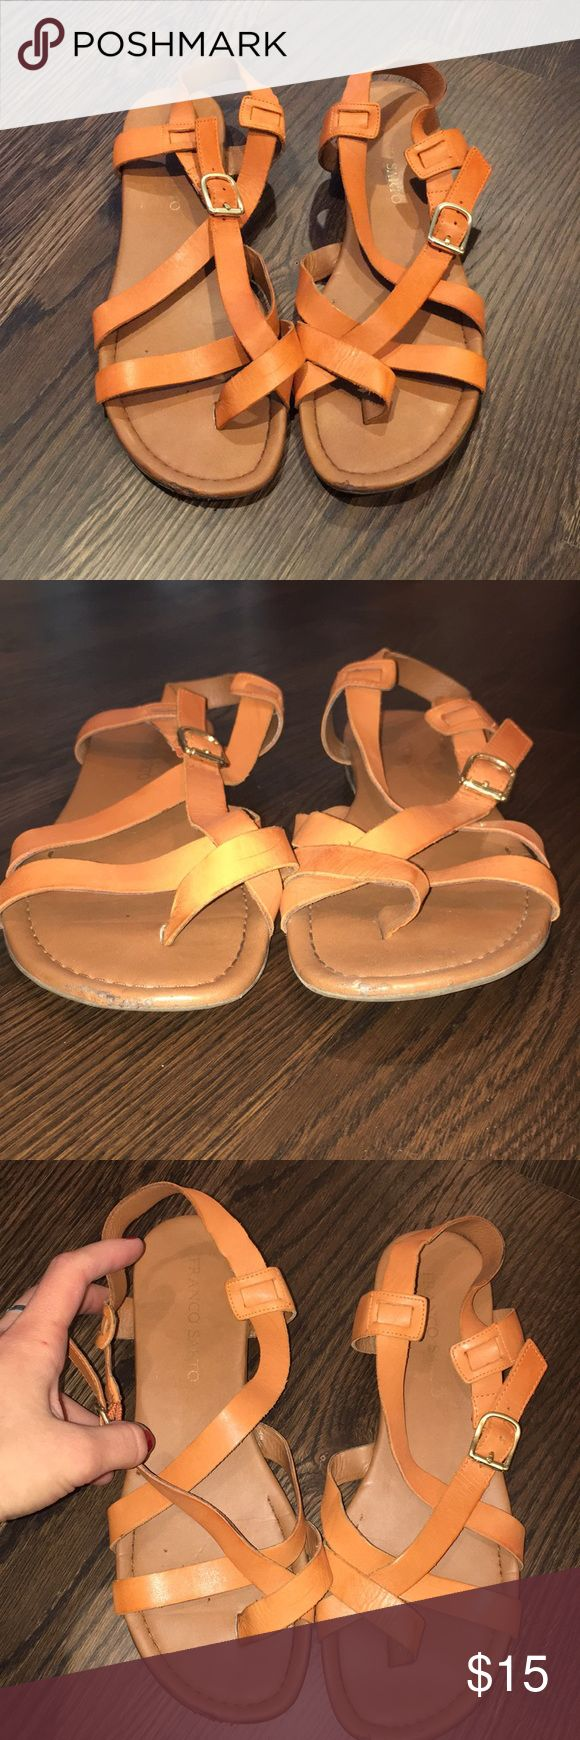 Franco Sarto sandals Super comfy sandals by Franco Sarto. They have an orange look to the straps - more then tan.. These were my go to 2 years ago cause they were so soft and cushioned on the bottom. Great condition still but front tip has more wear that shows. Super cute to a dress or jeans. Franco Sarto Shoes Sandals